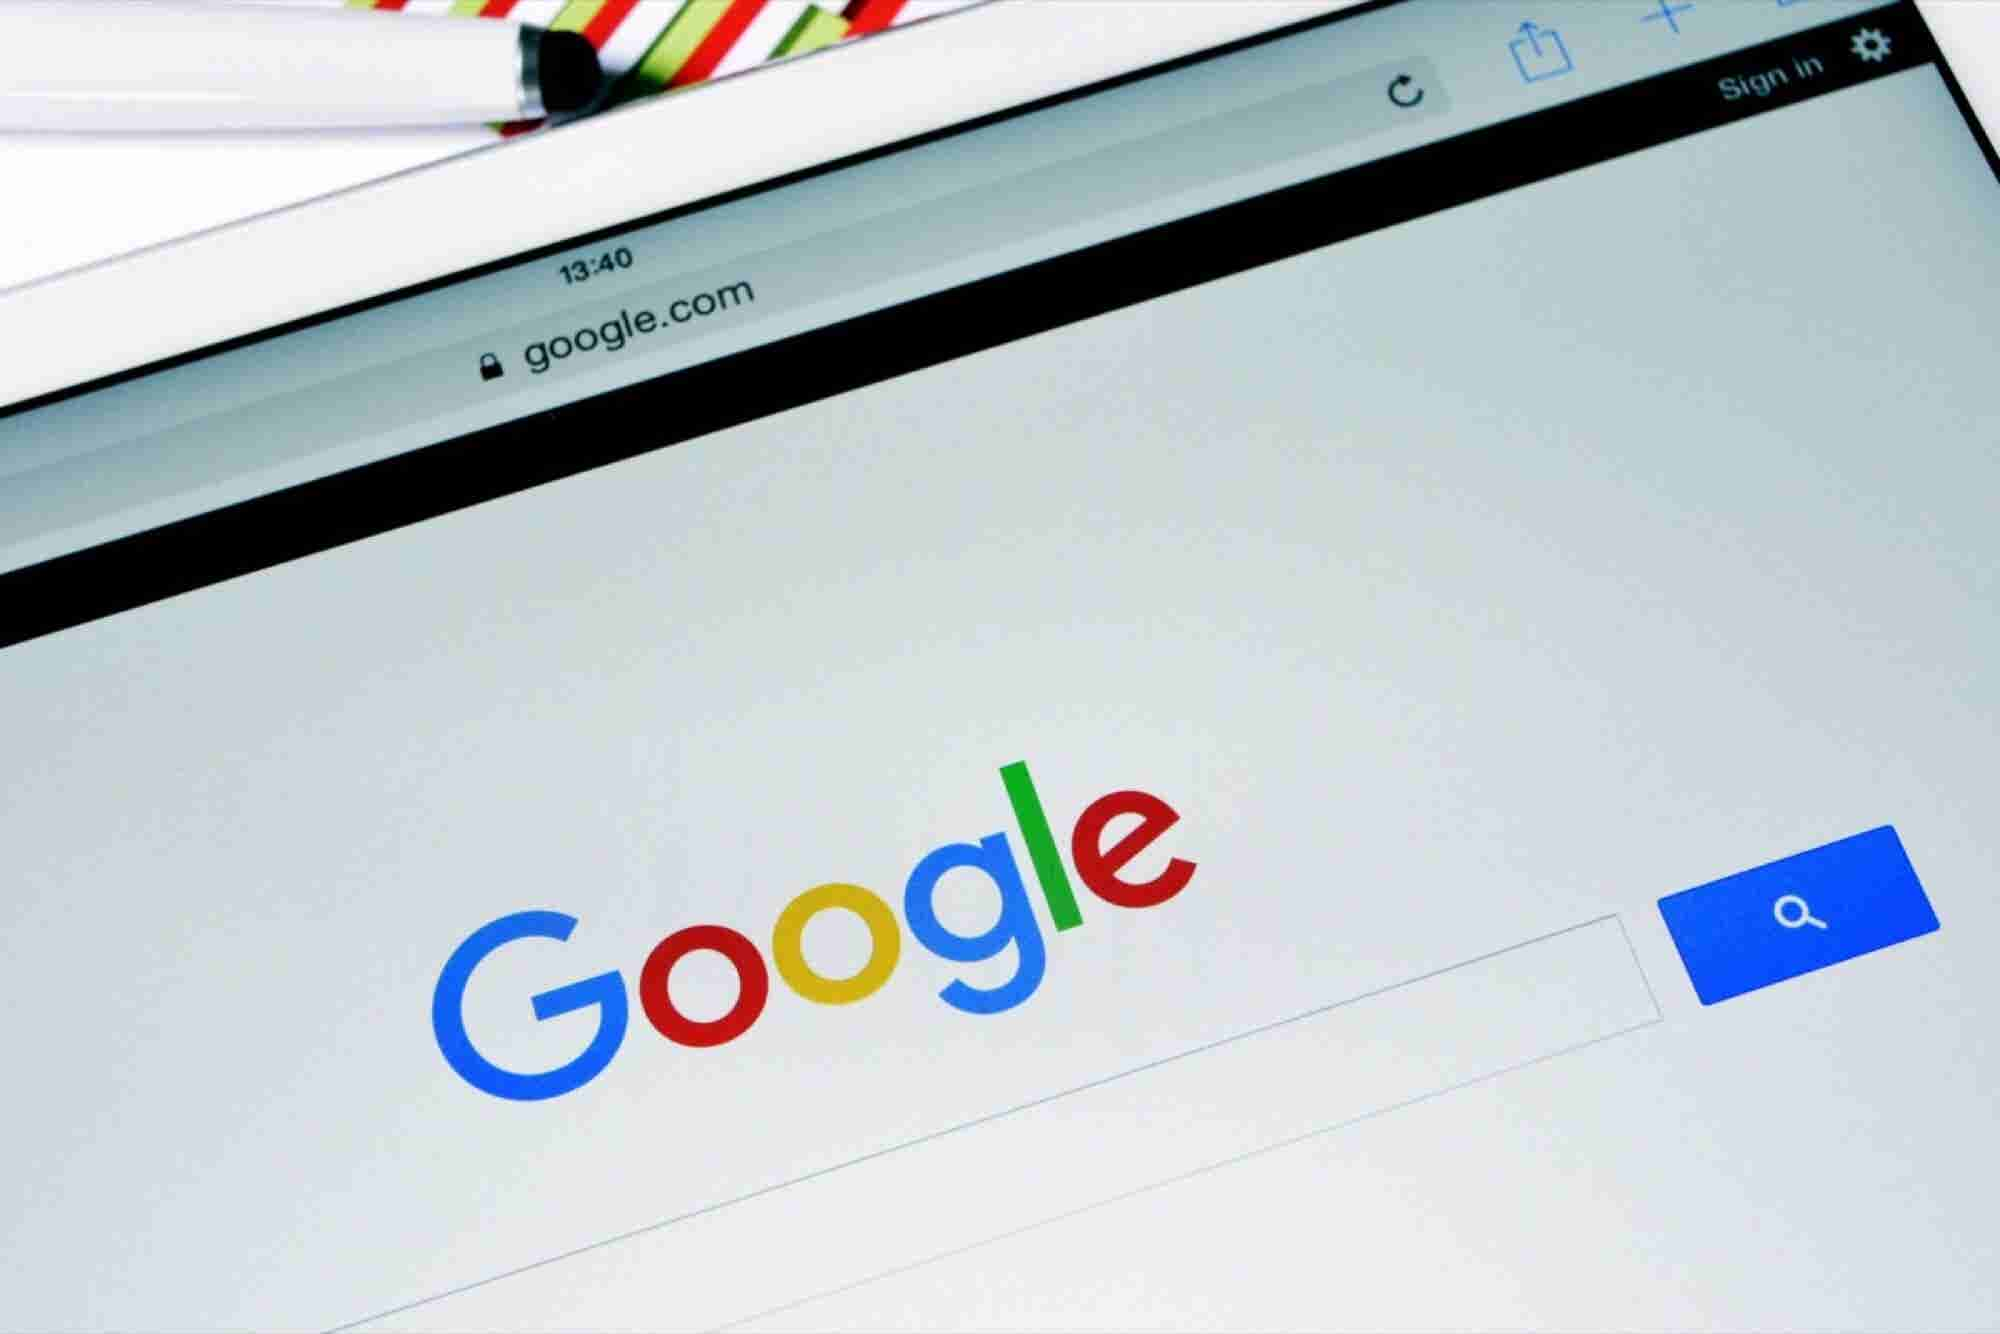 Five Red Flags That Can Destroy Your Google Ranking